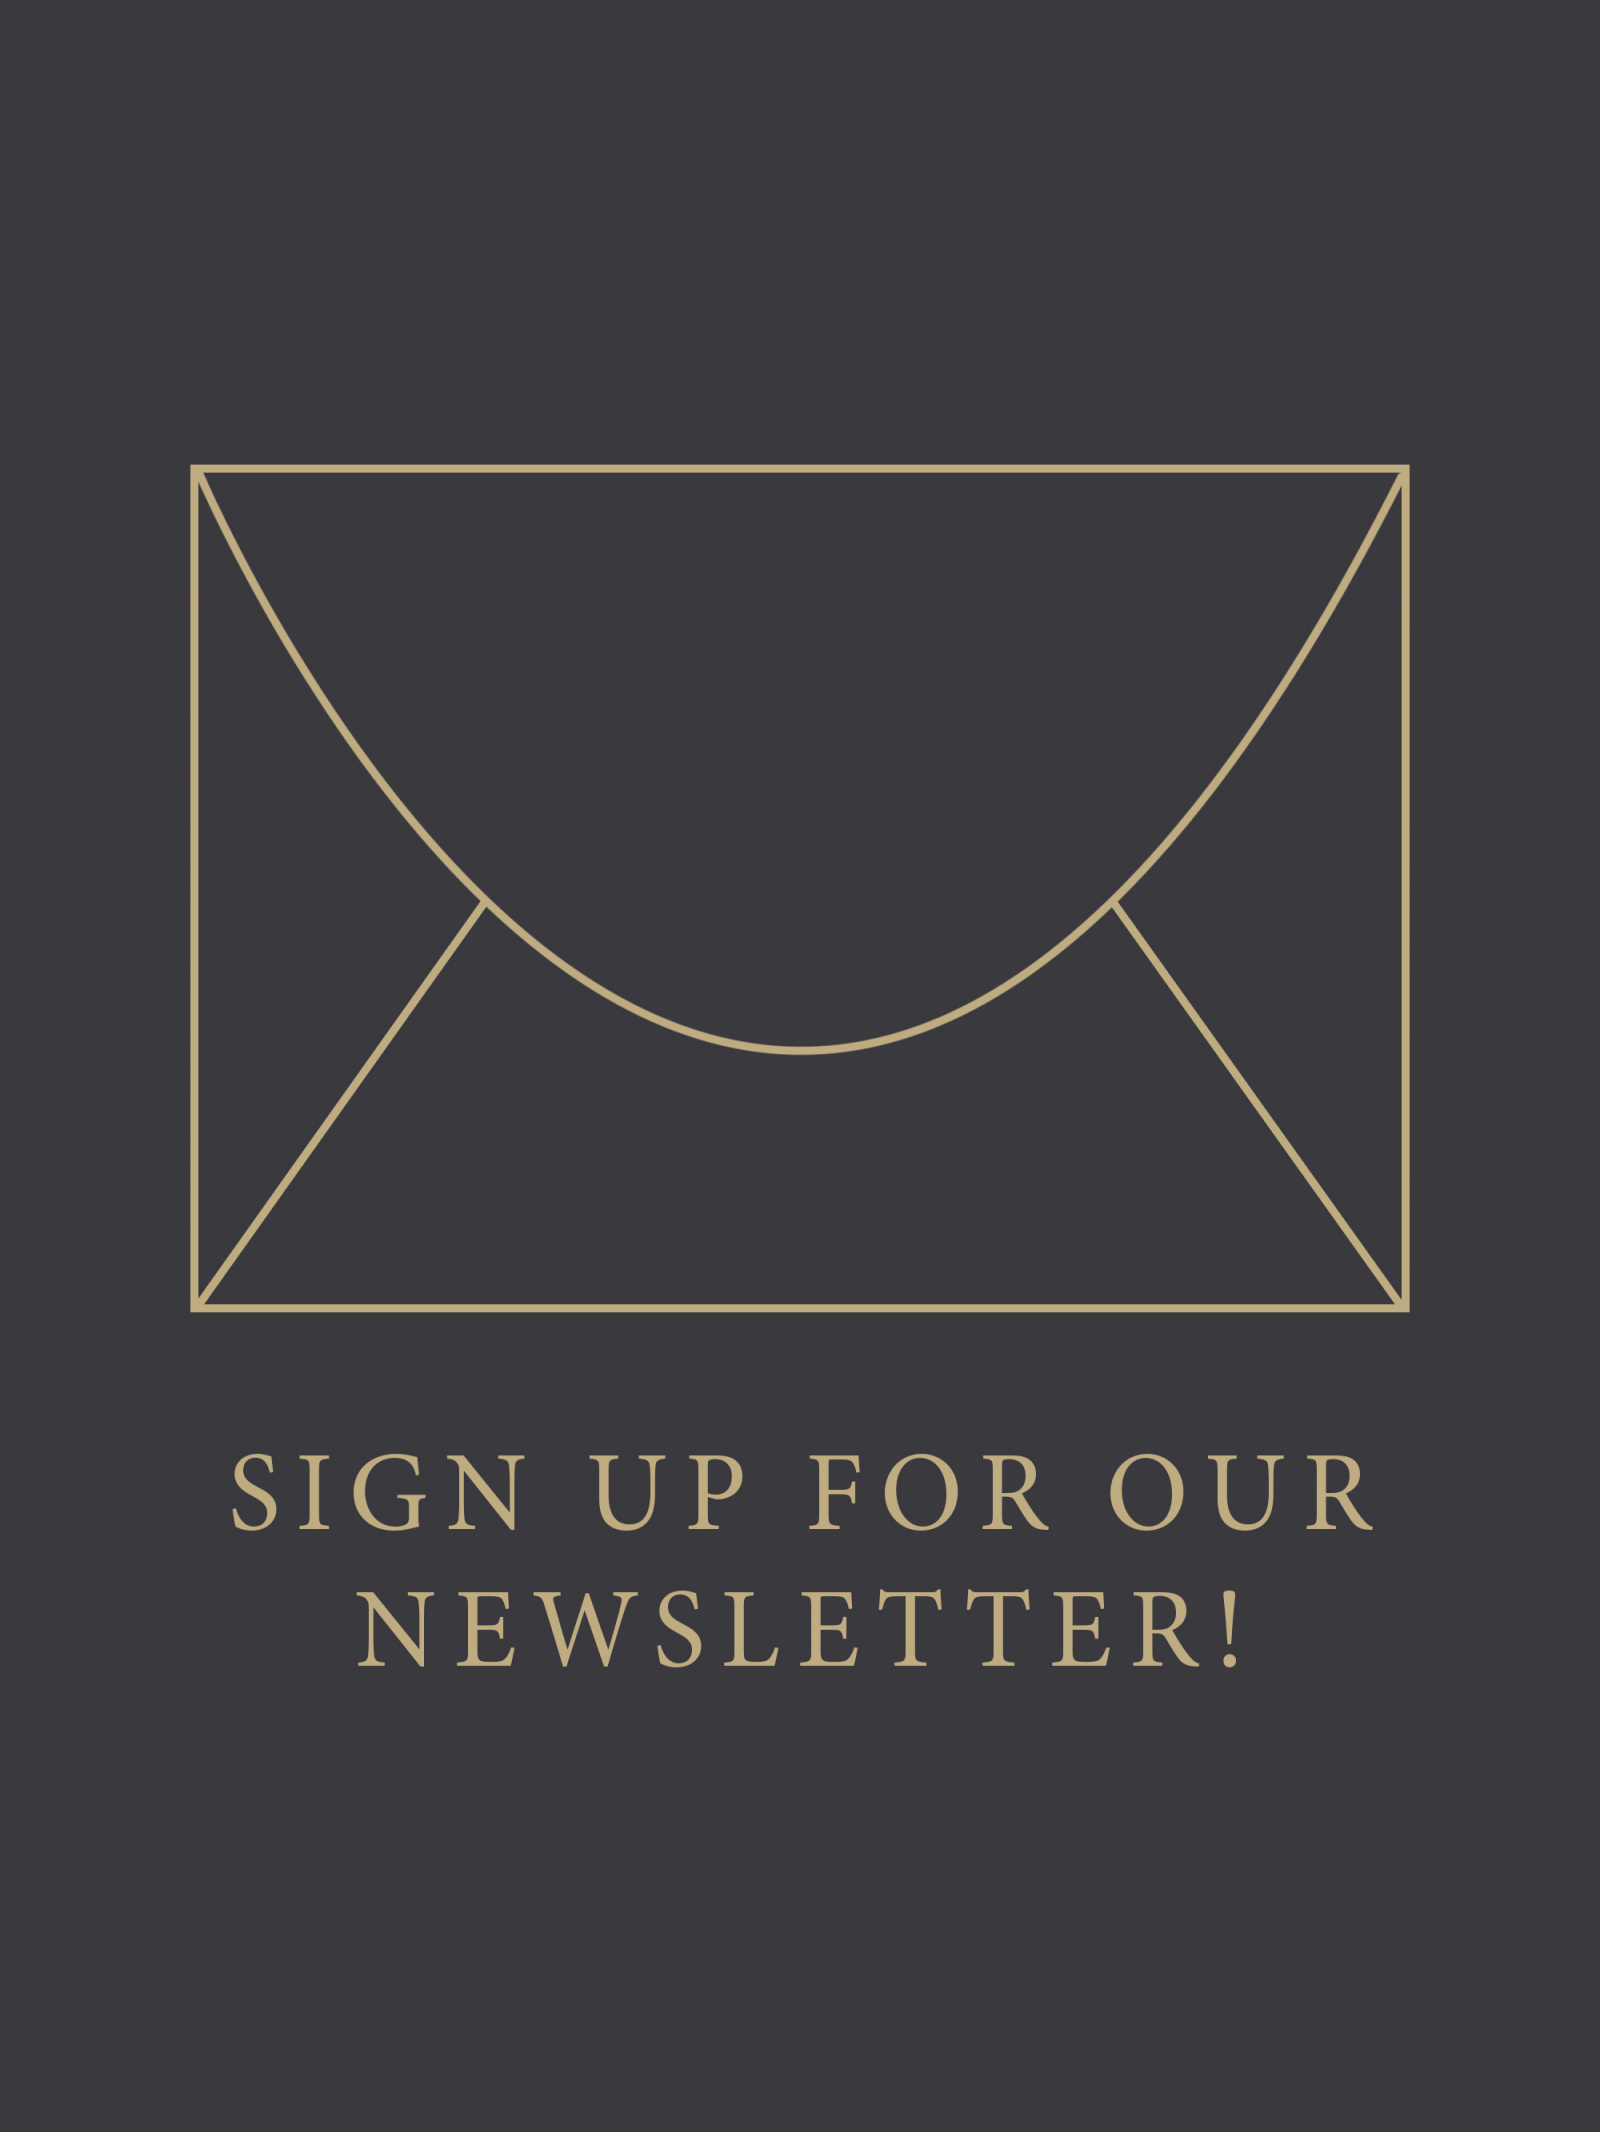 Don't miss our News, Events or Campaigns!